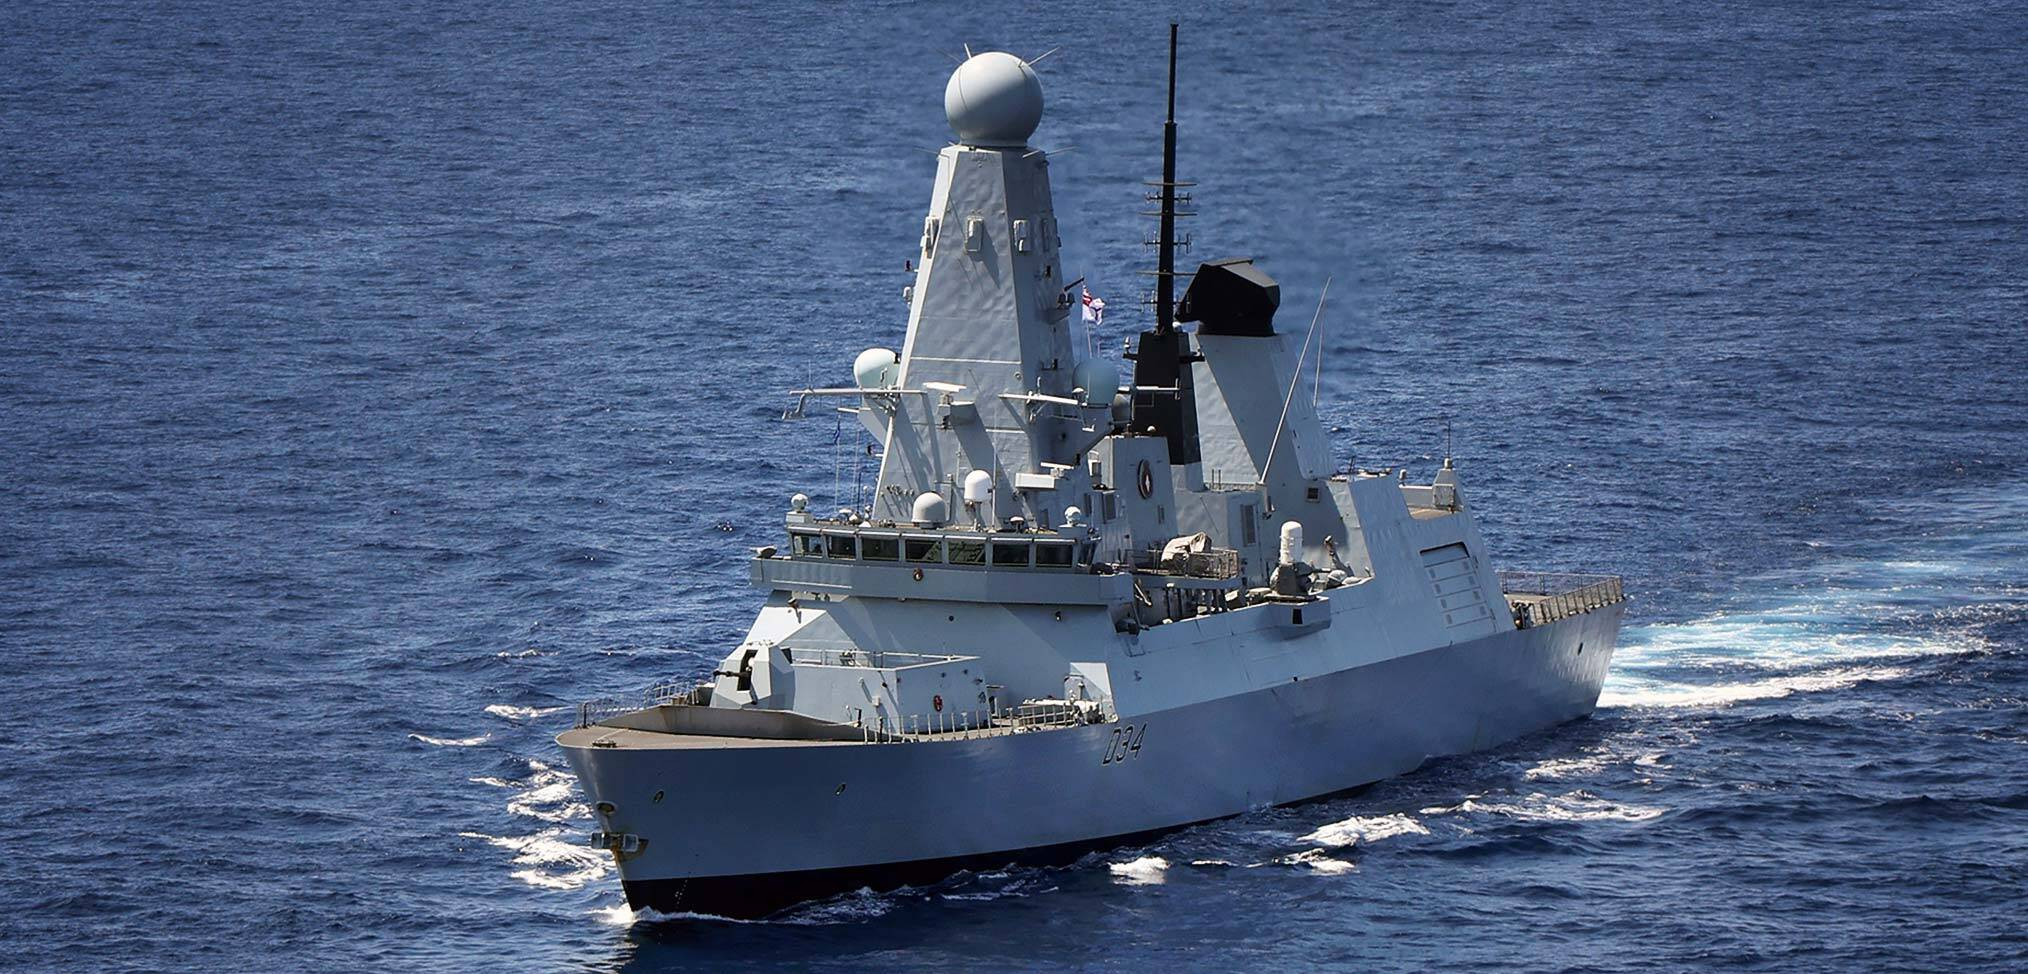 HMS Diamond suffers serious defect during Carrier Strike Group deployment